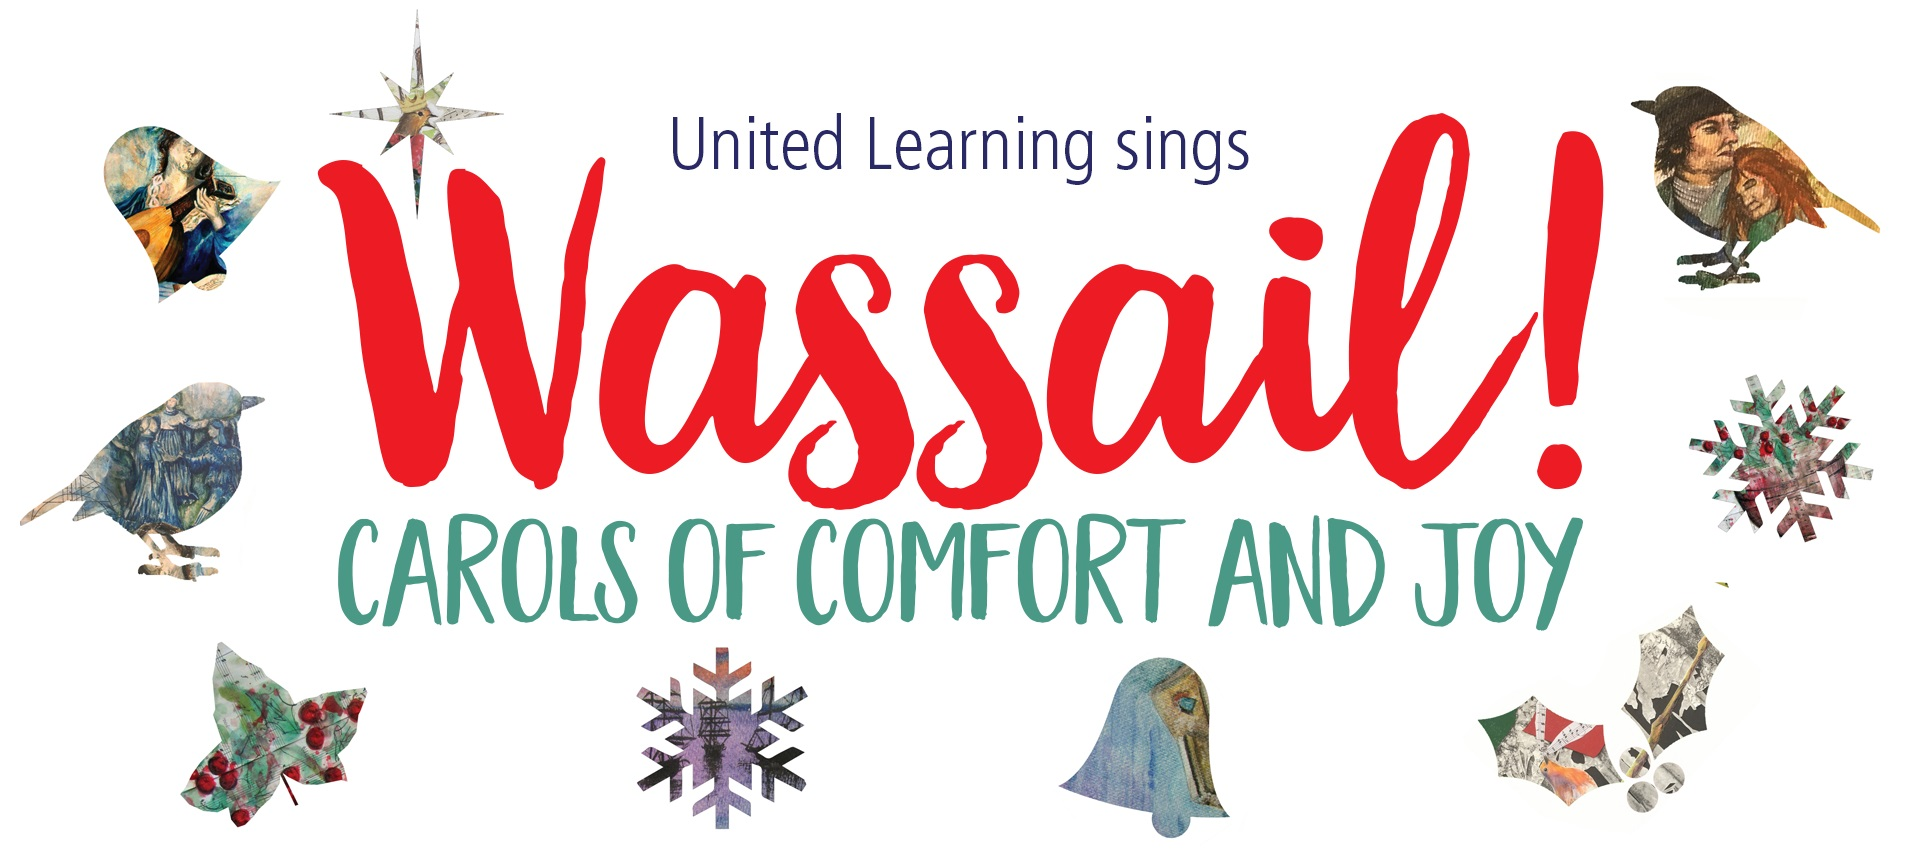 wassail carols of comfort and joy